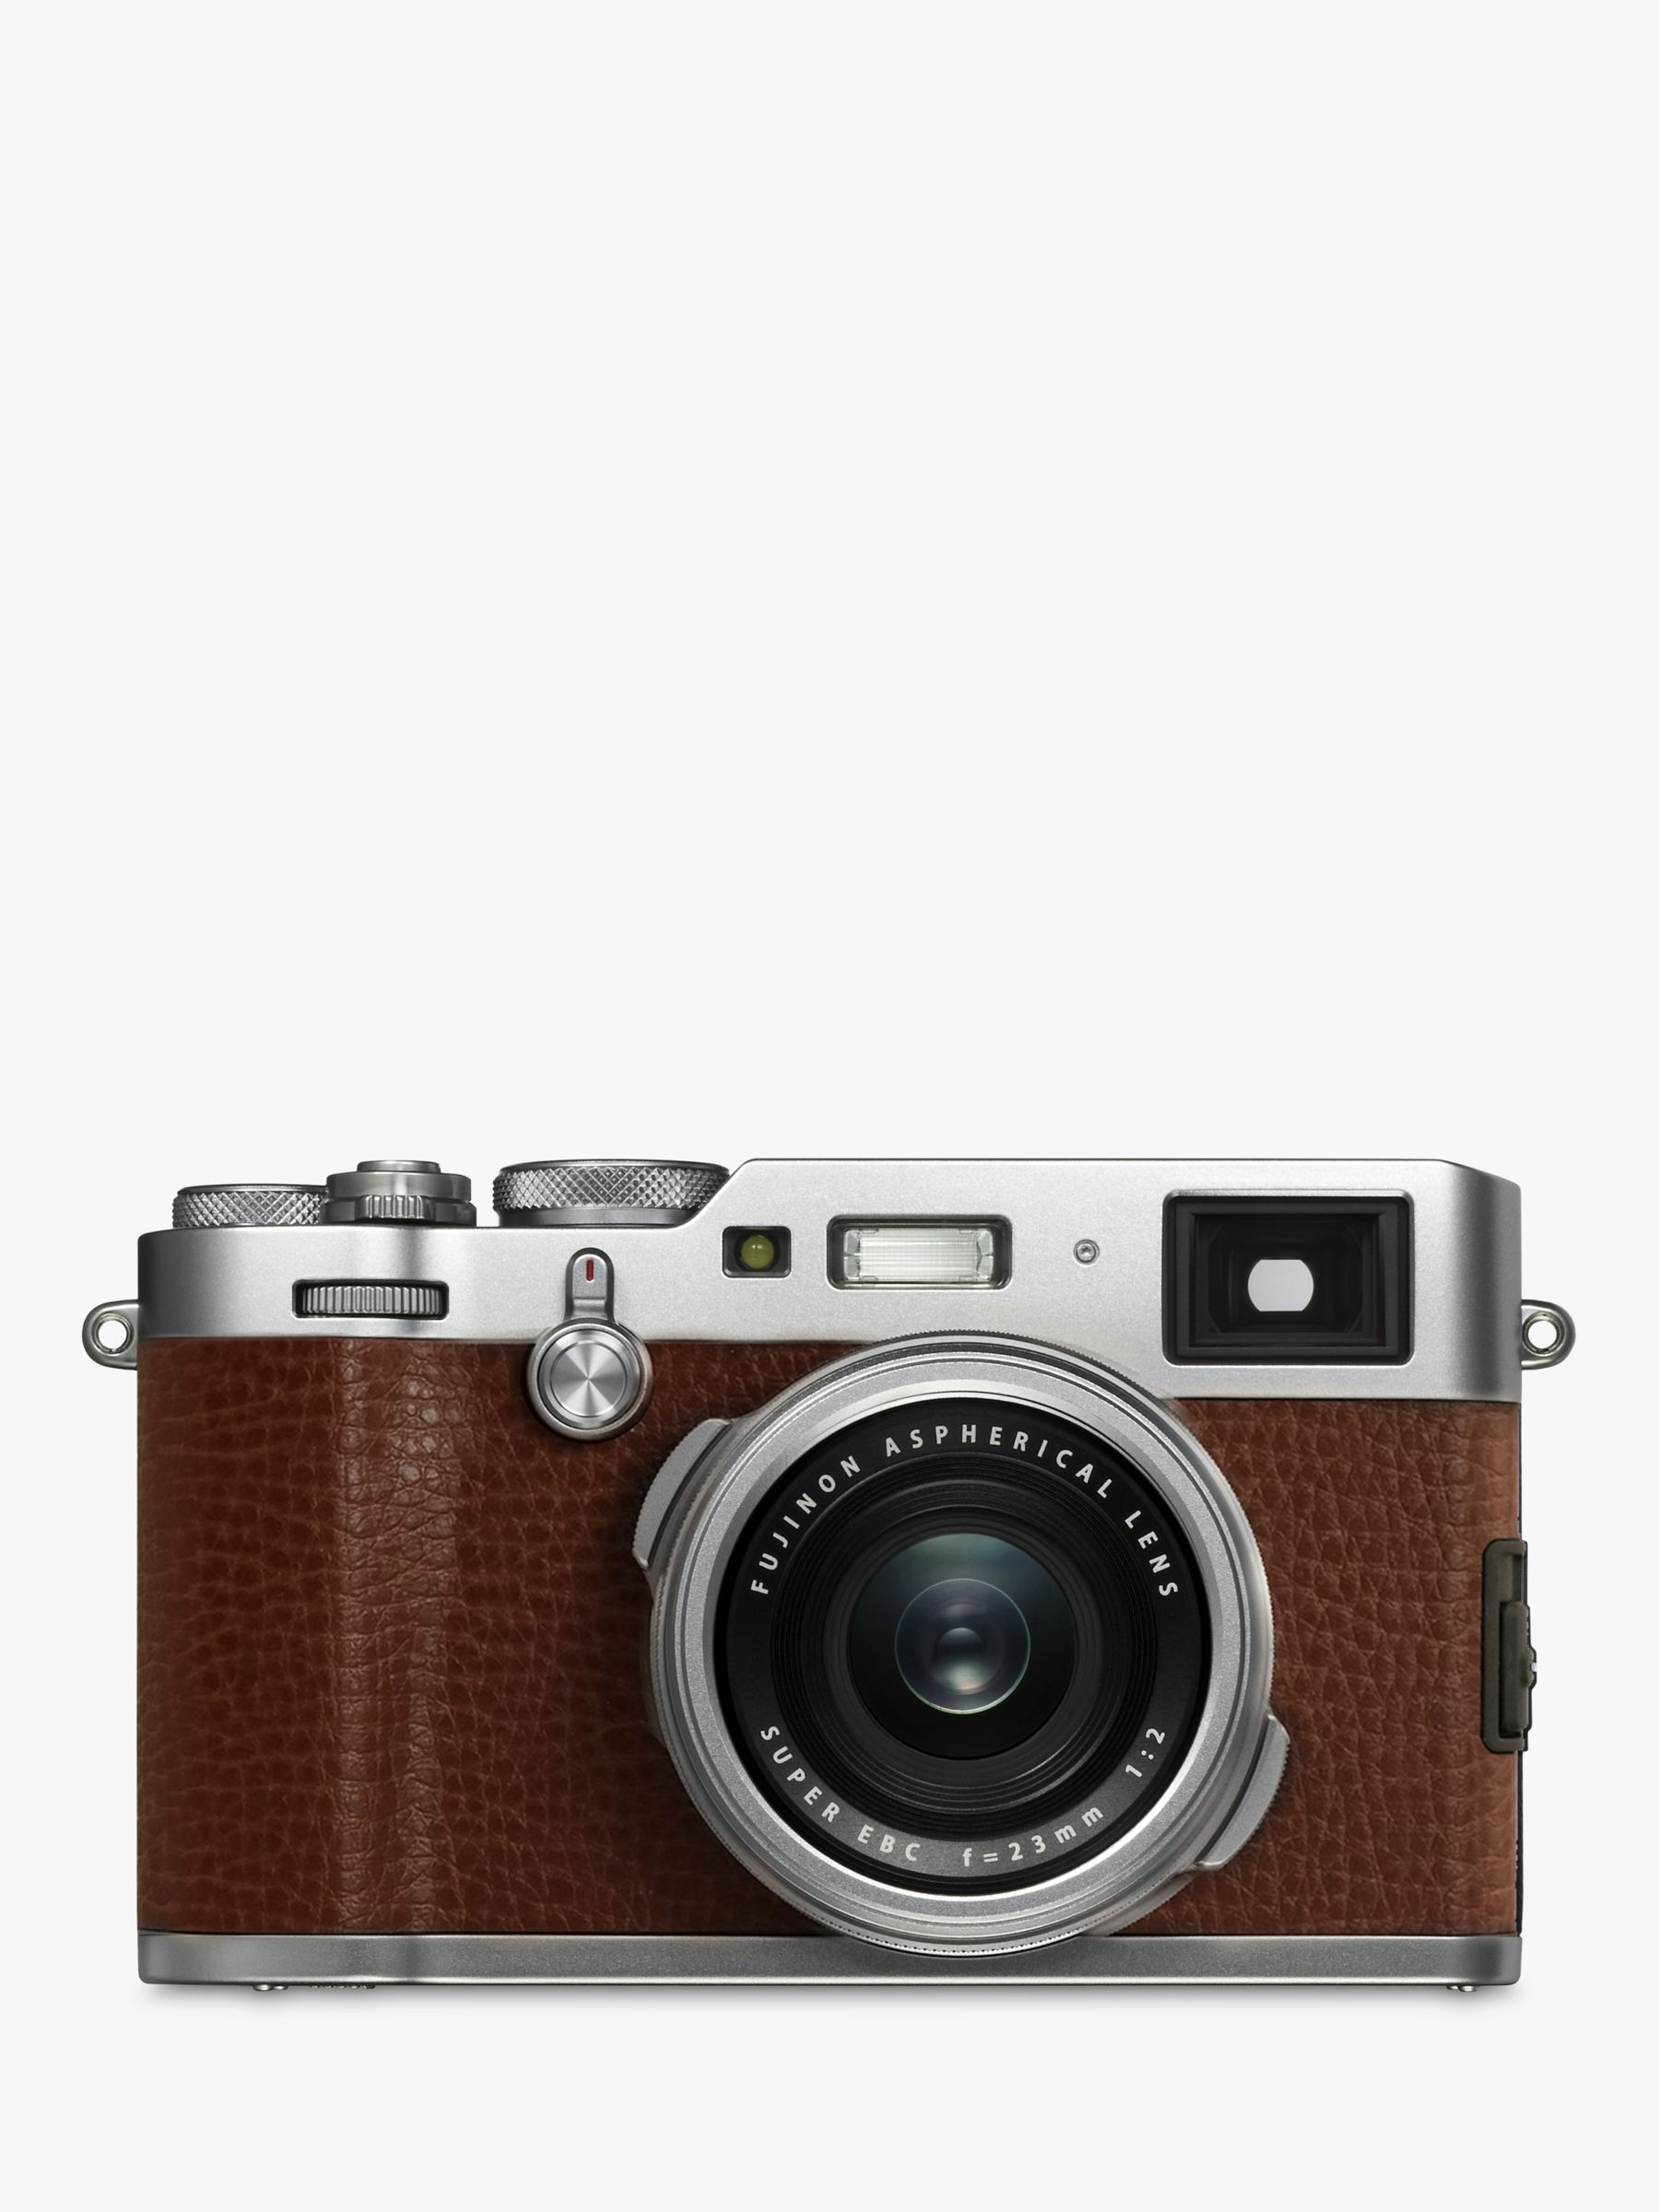 Fujifilm Fujifilm X100F Digital Compact Camera with 23mm Lens, 1080p Full HD, 24.3MP, Wi-Fi, Hybrid EVF/OVF, 3 LCD Screen, Brown